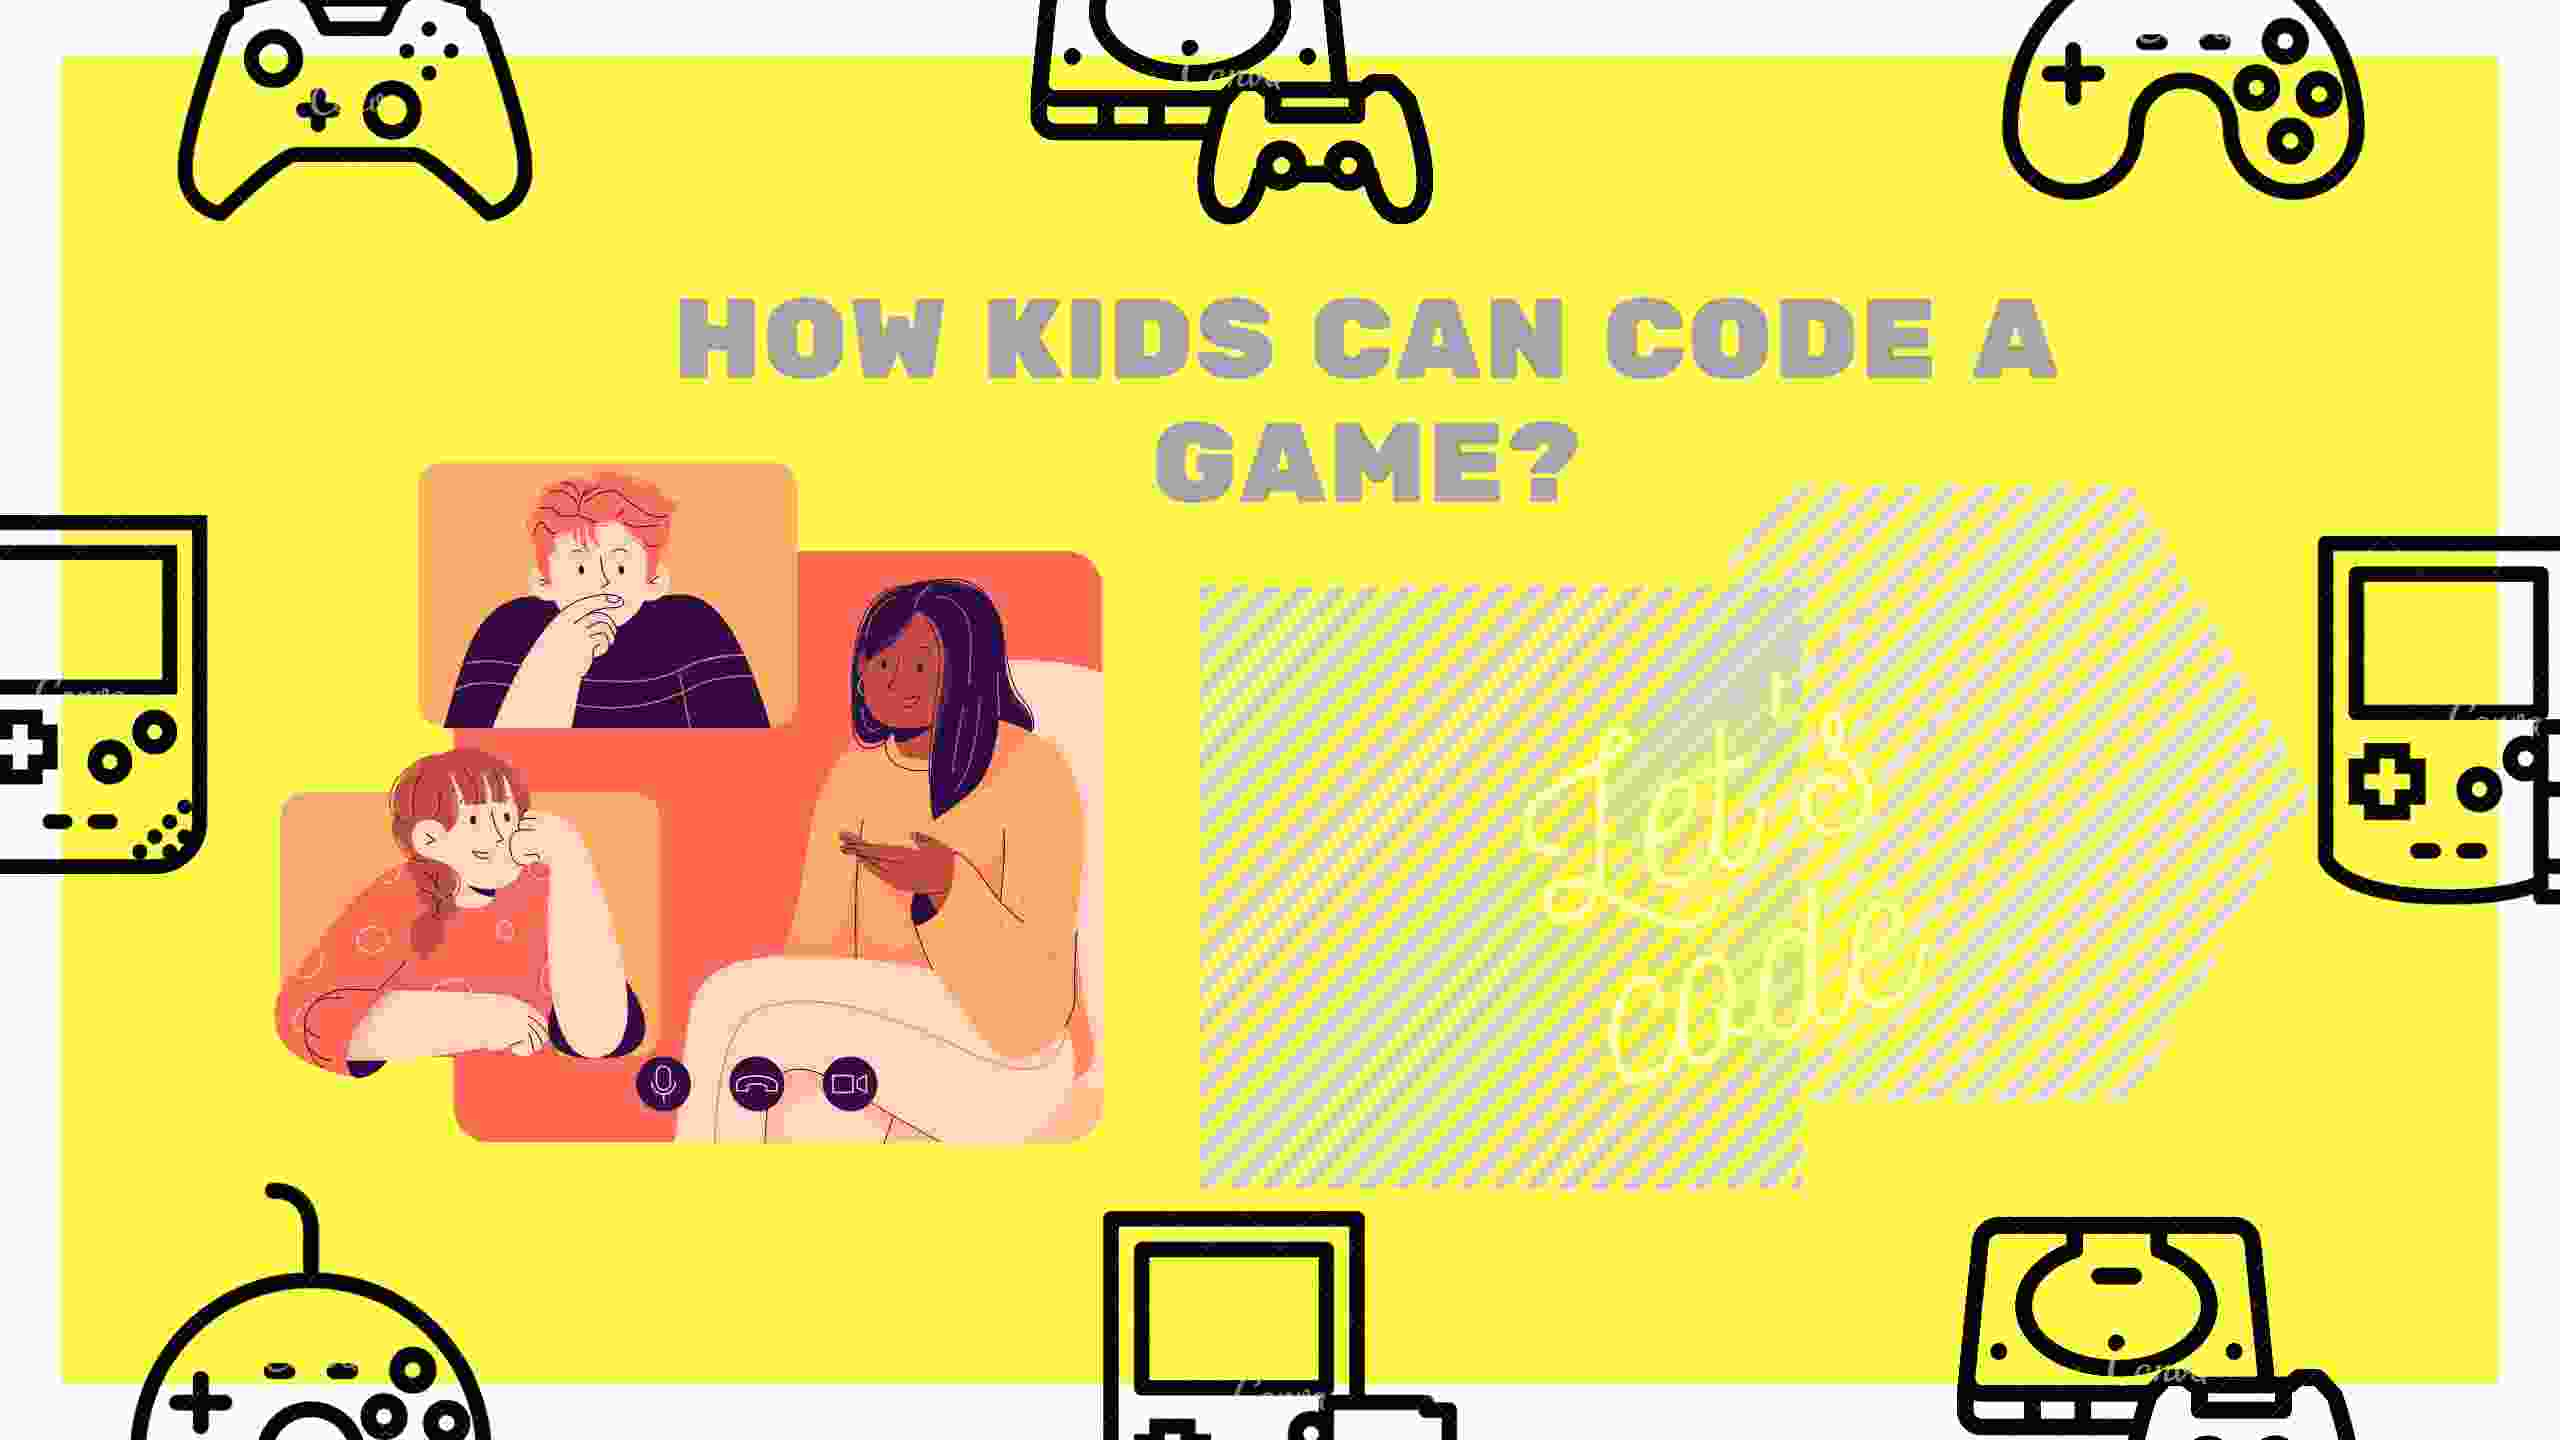 How can kids Code a Game?